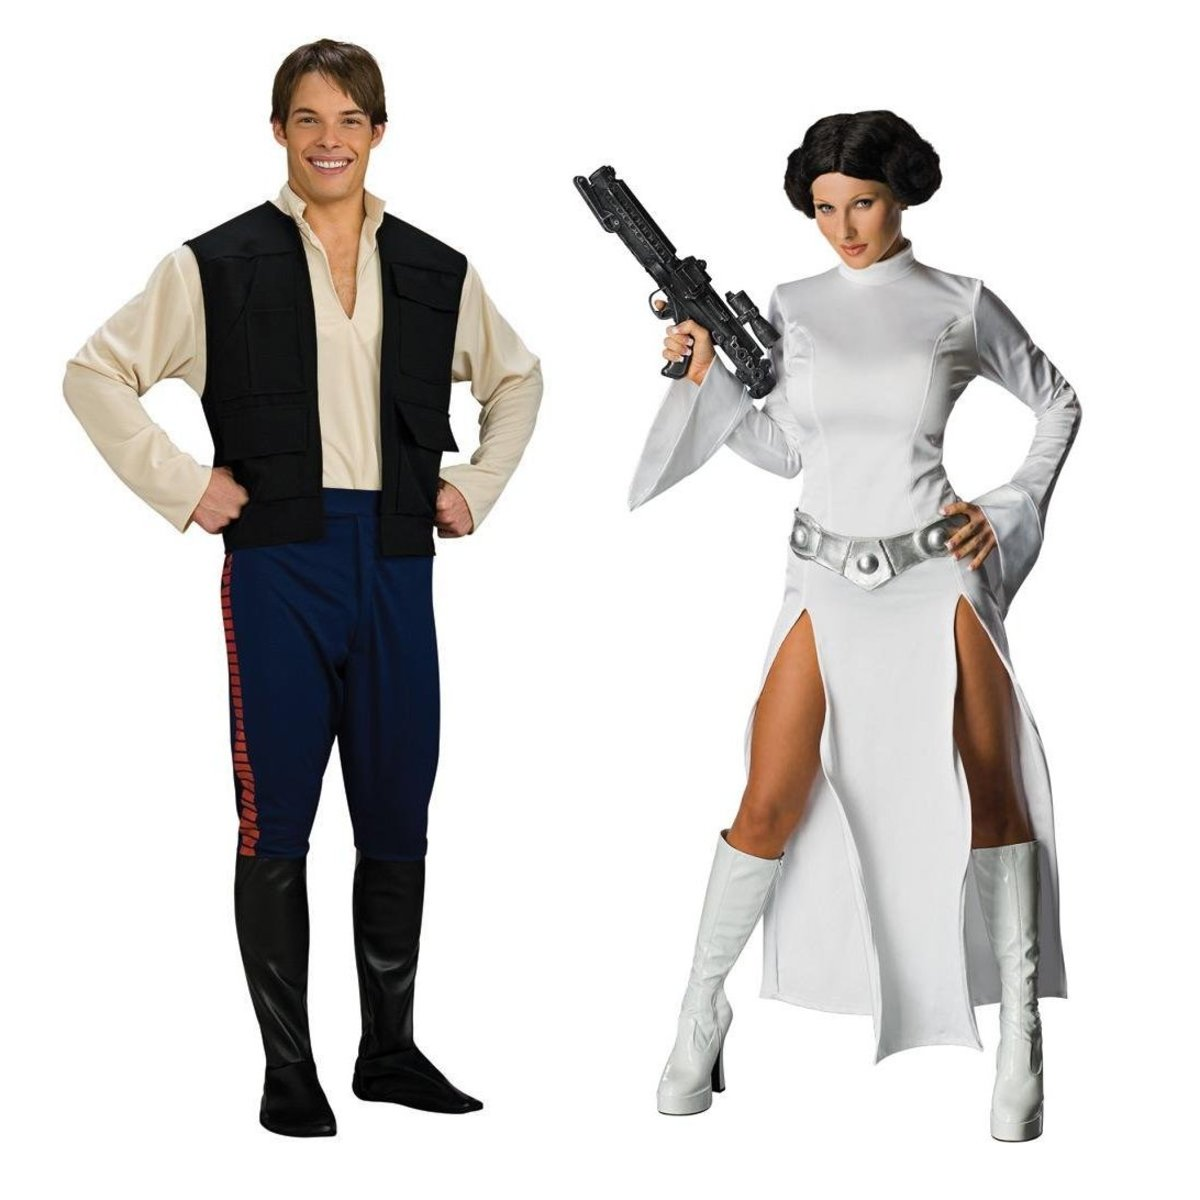 Princess Leia and Her Counterpart Hans Solo